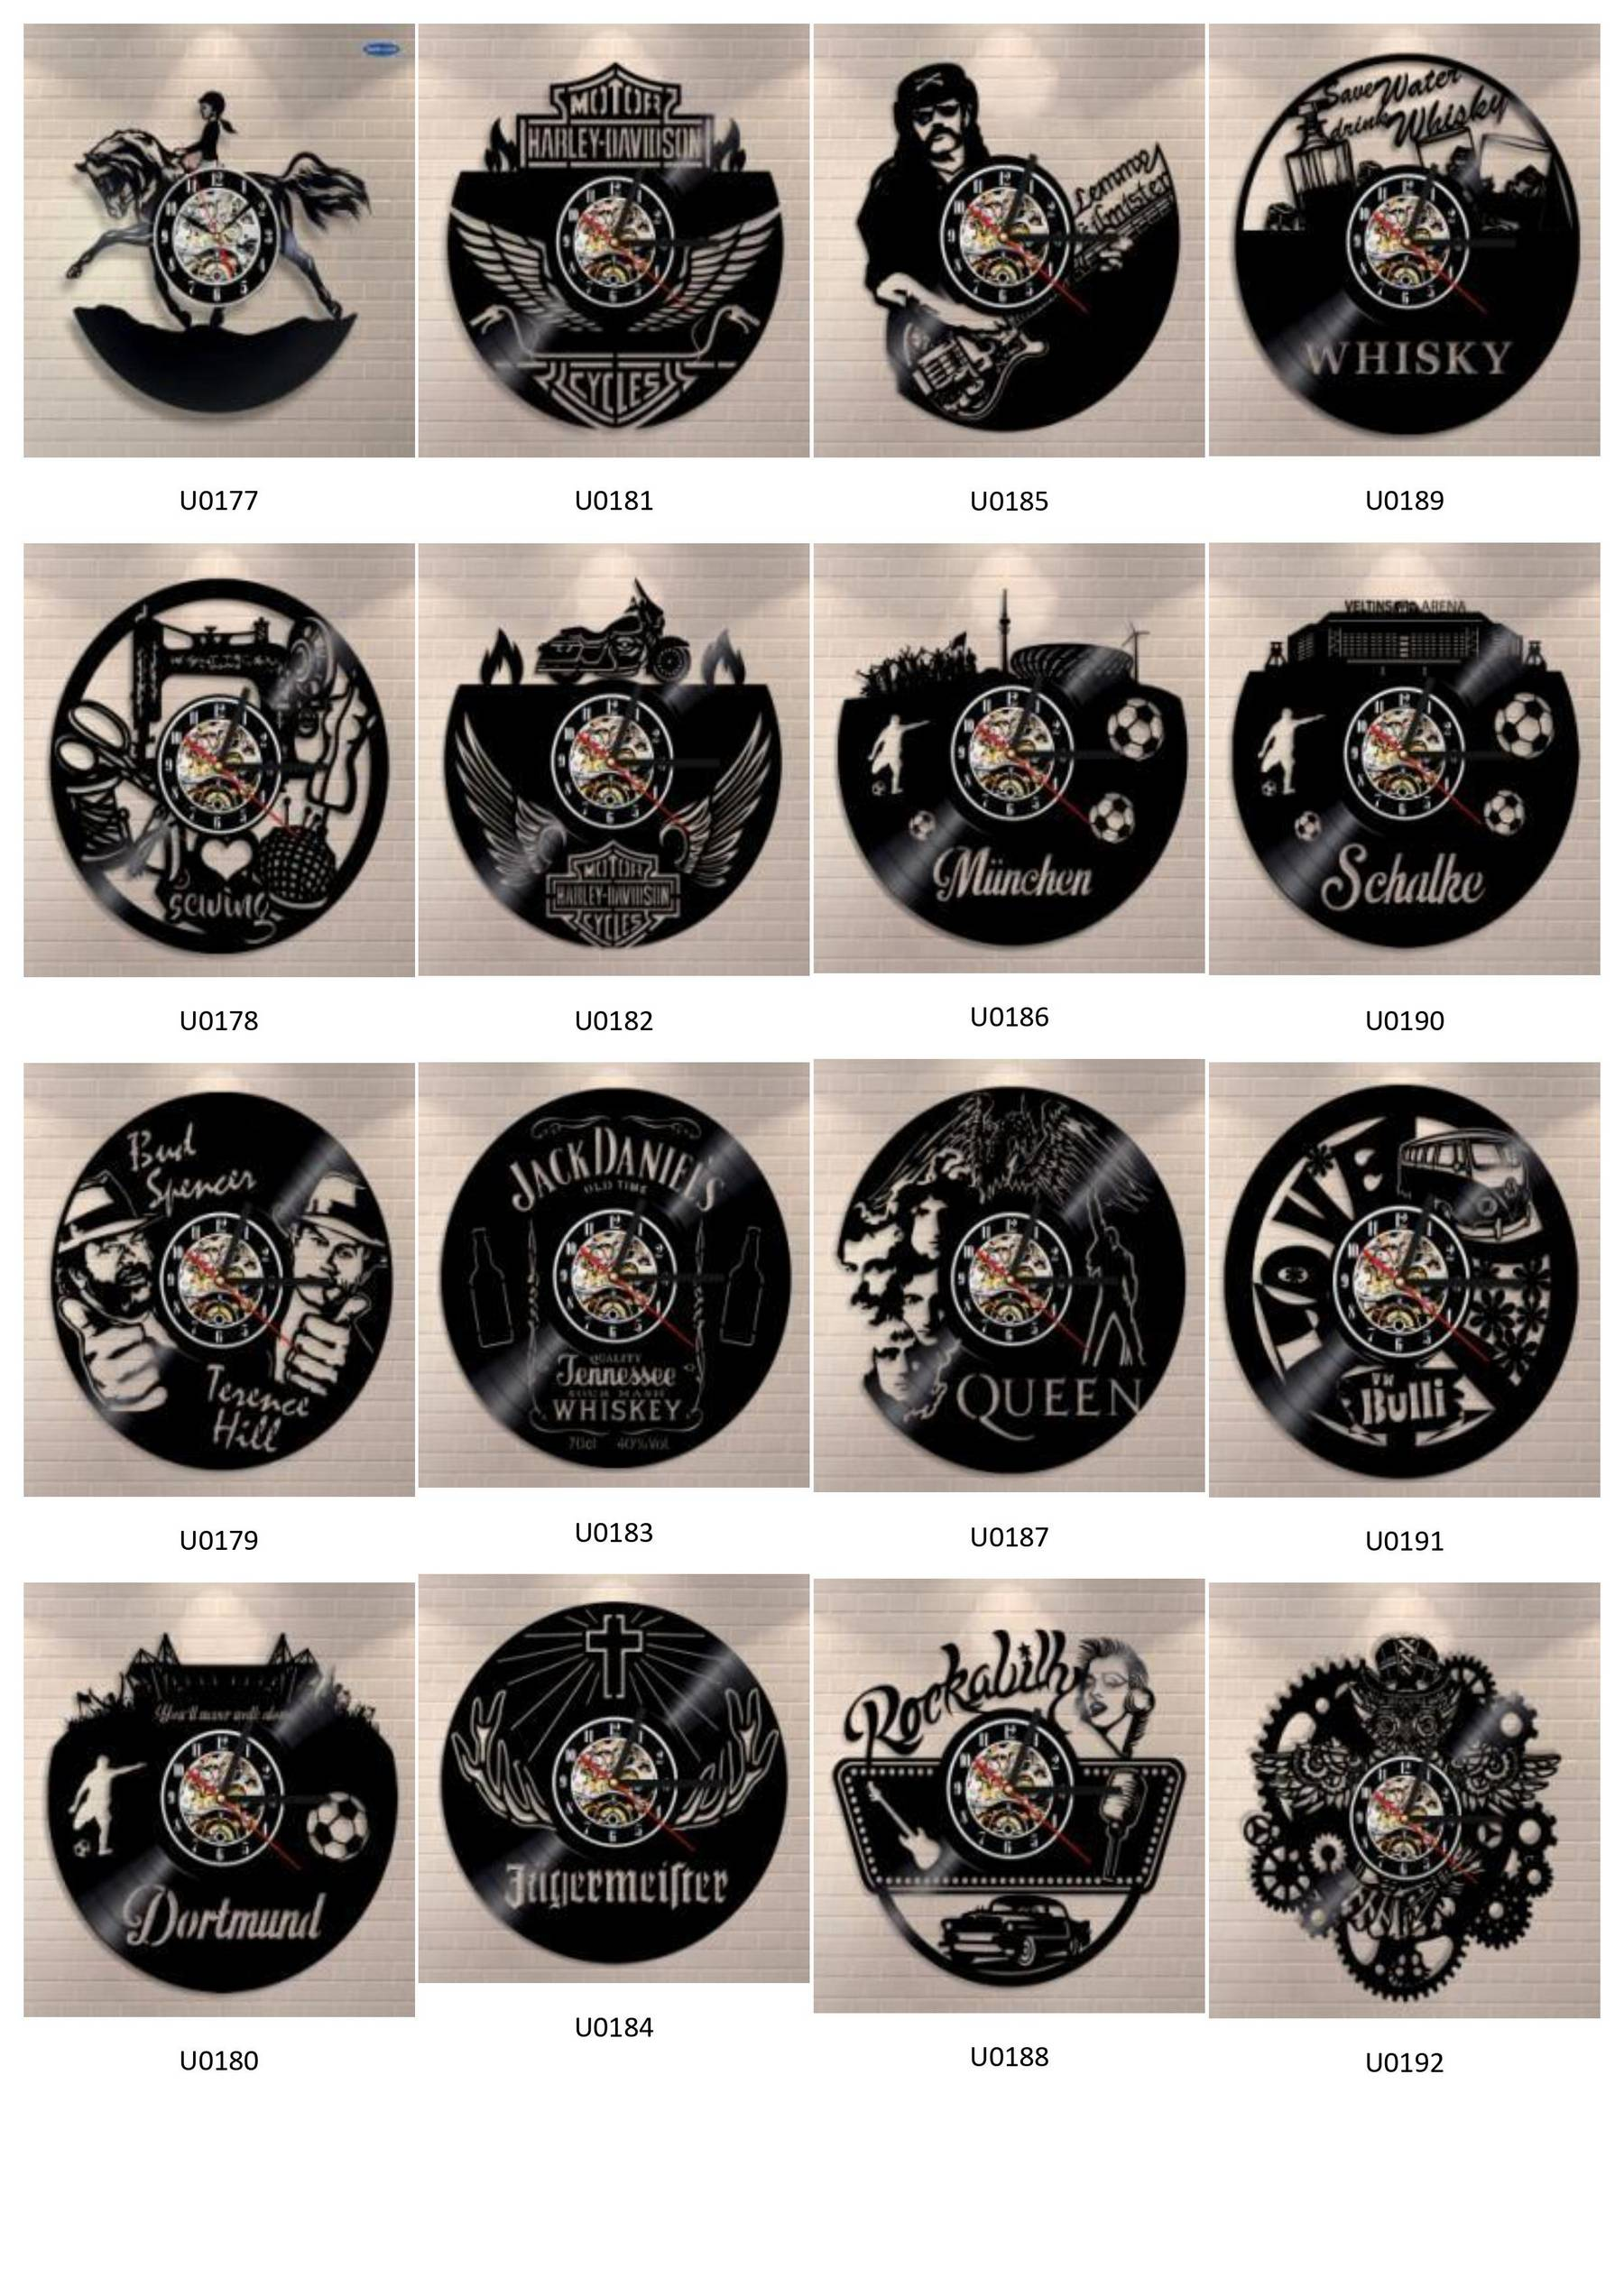 HelloKookoo - Catalogue horloge vinyle LED